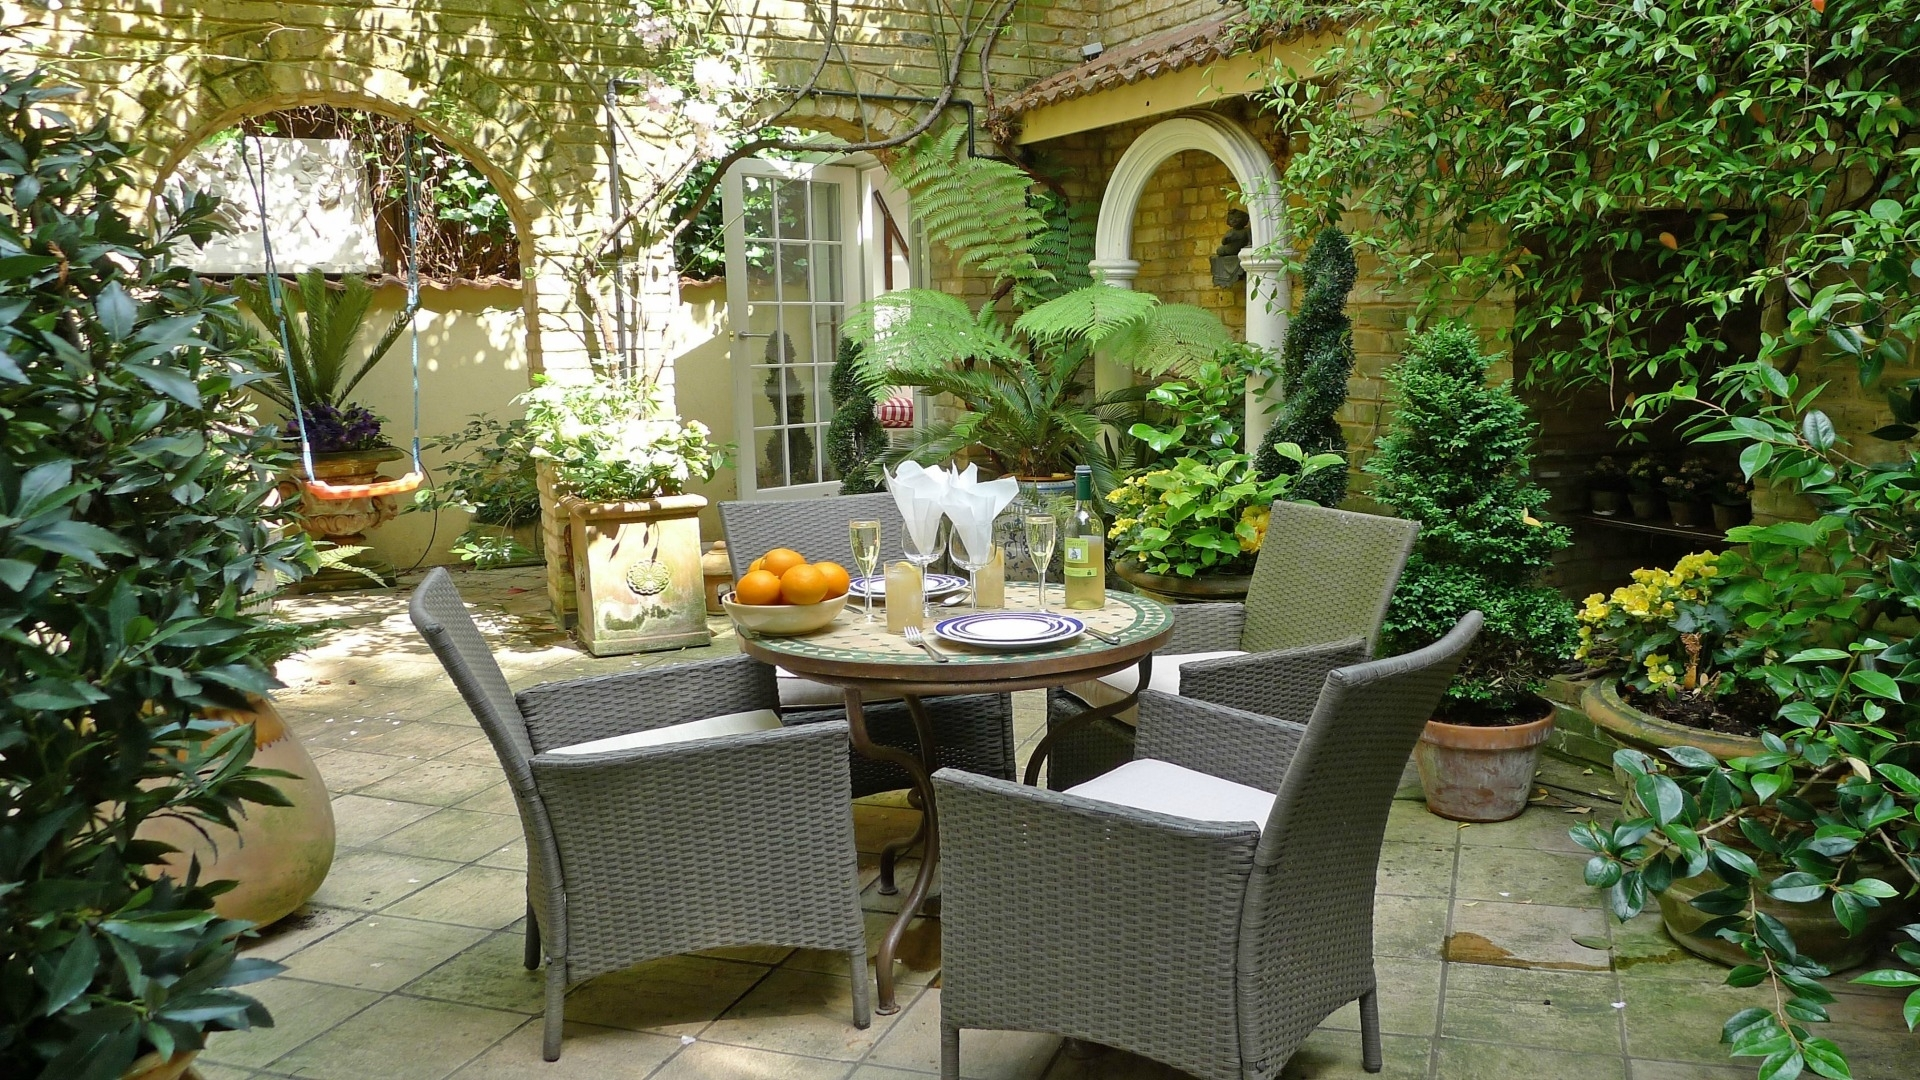 London Vacation Rentals - Search Results - London Perfect with regard to Courtyard Garden Apartments